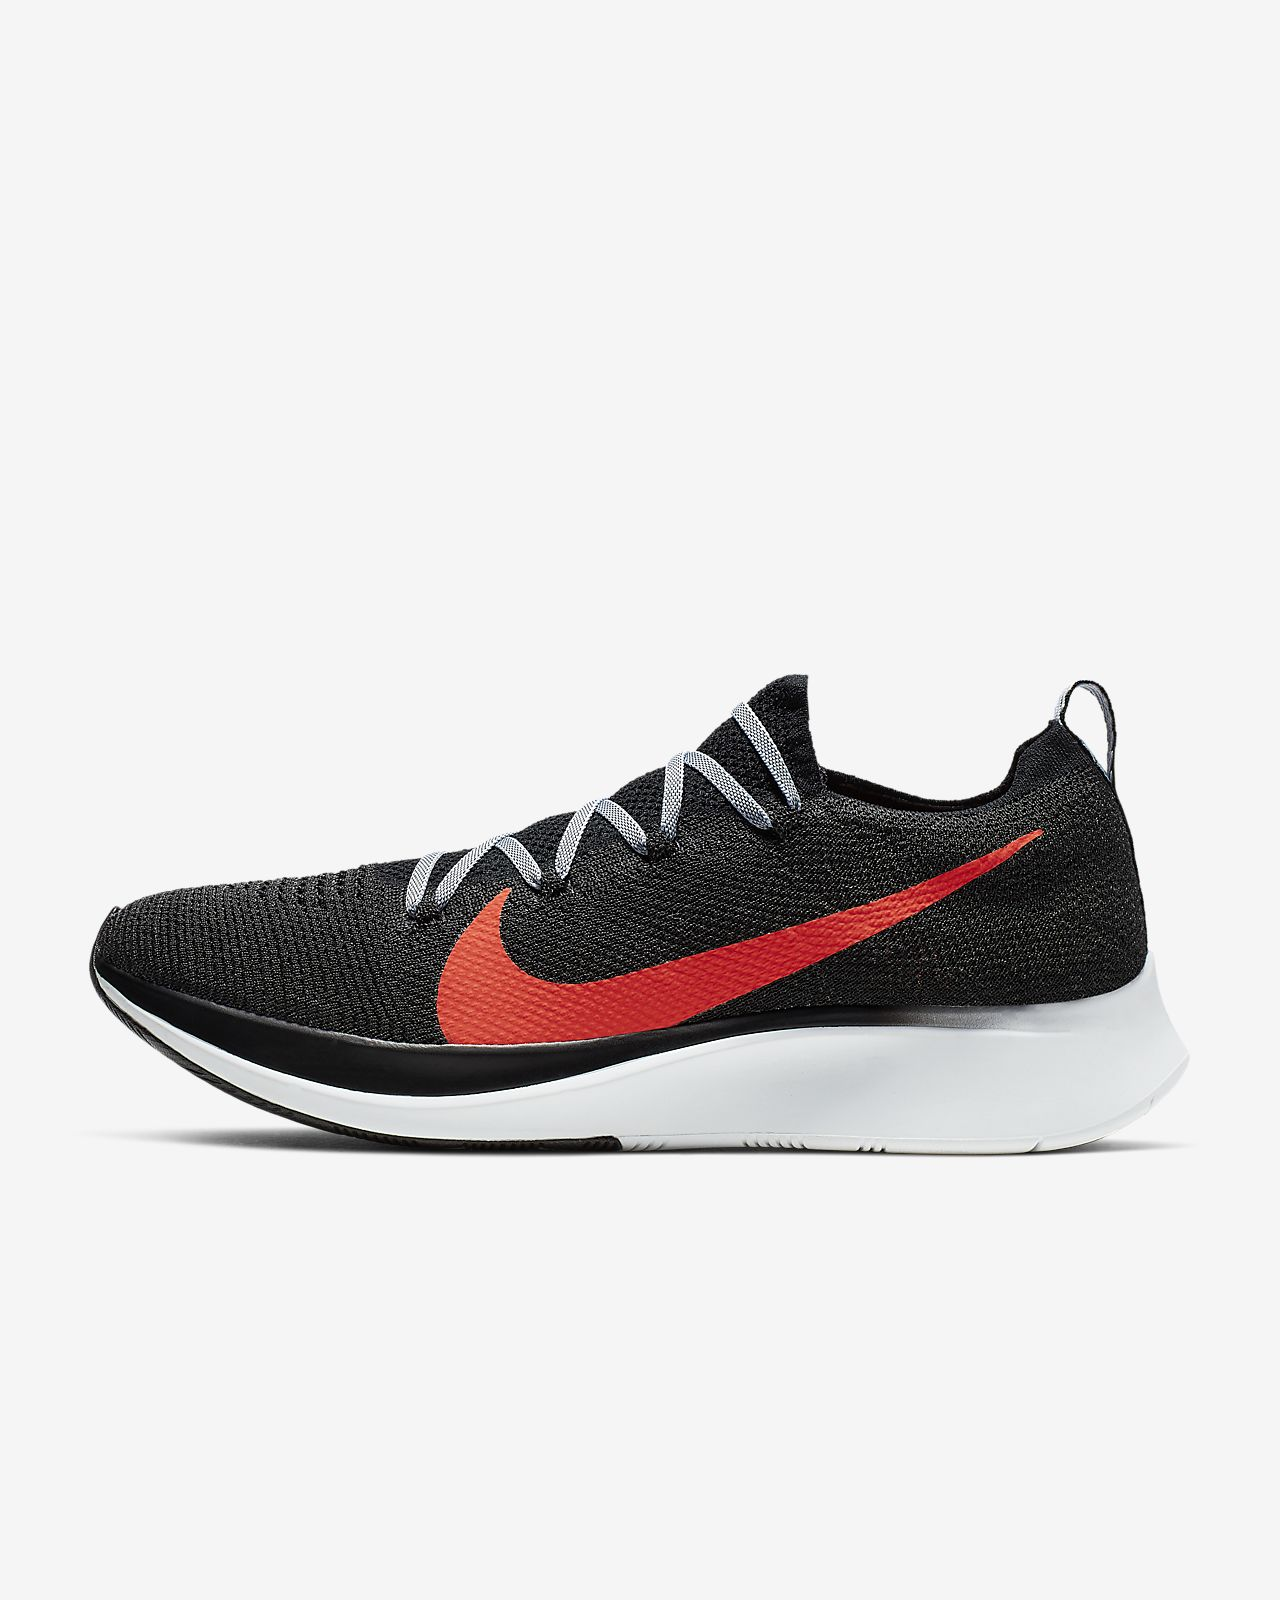 1e2306f341e5 Nike Zoom Fly Flyknit Men s Running Shoe. Nike.com